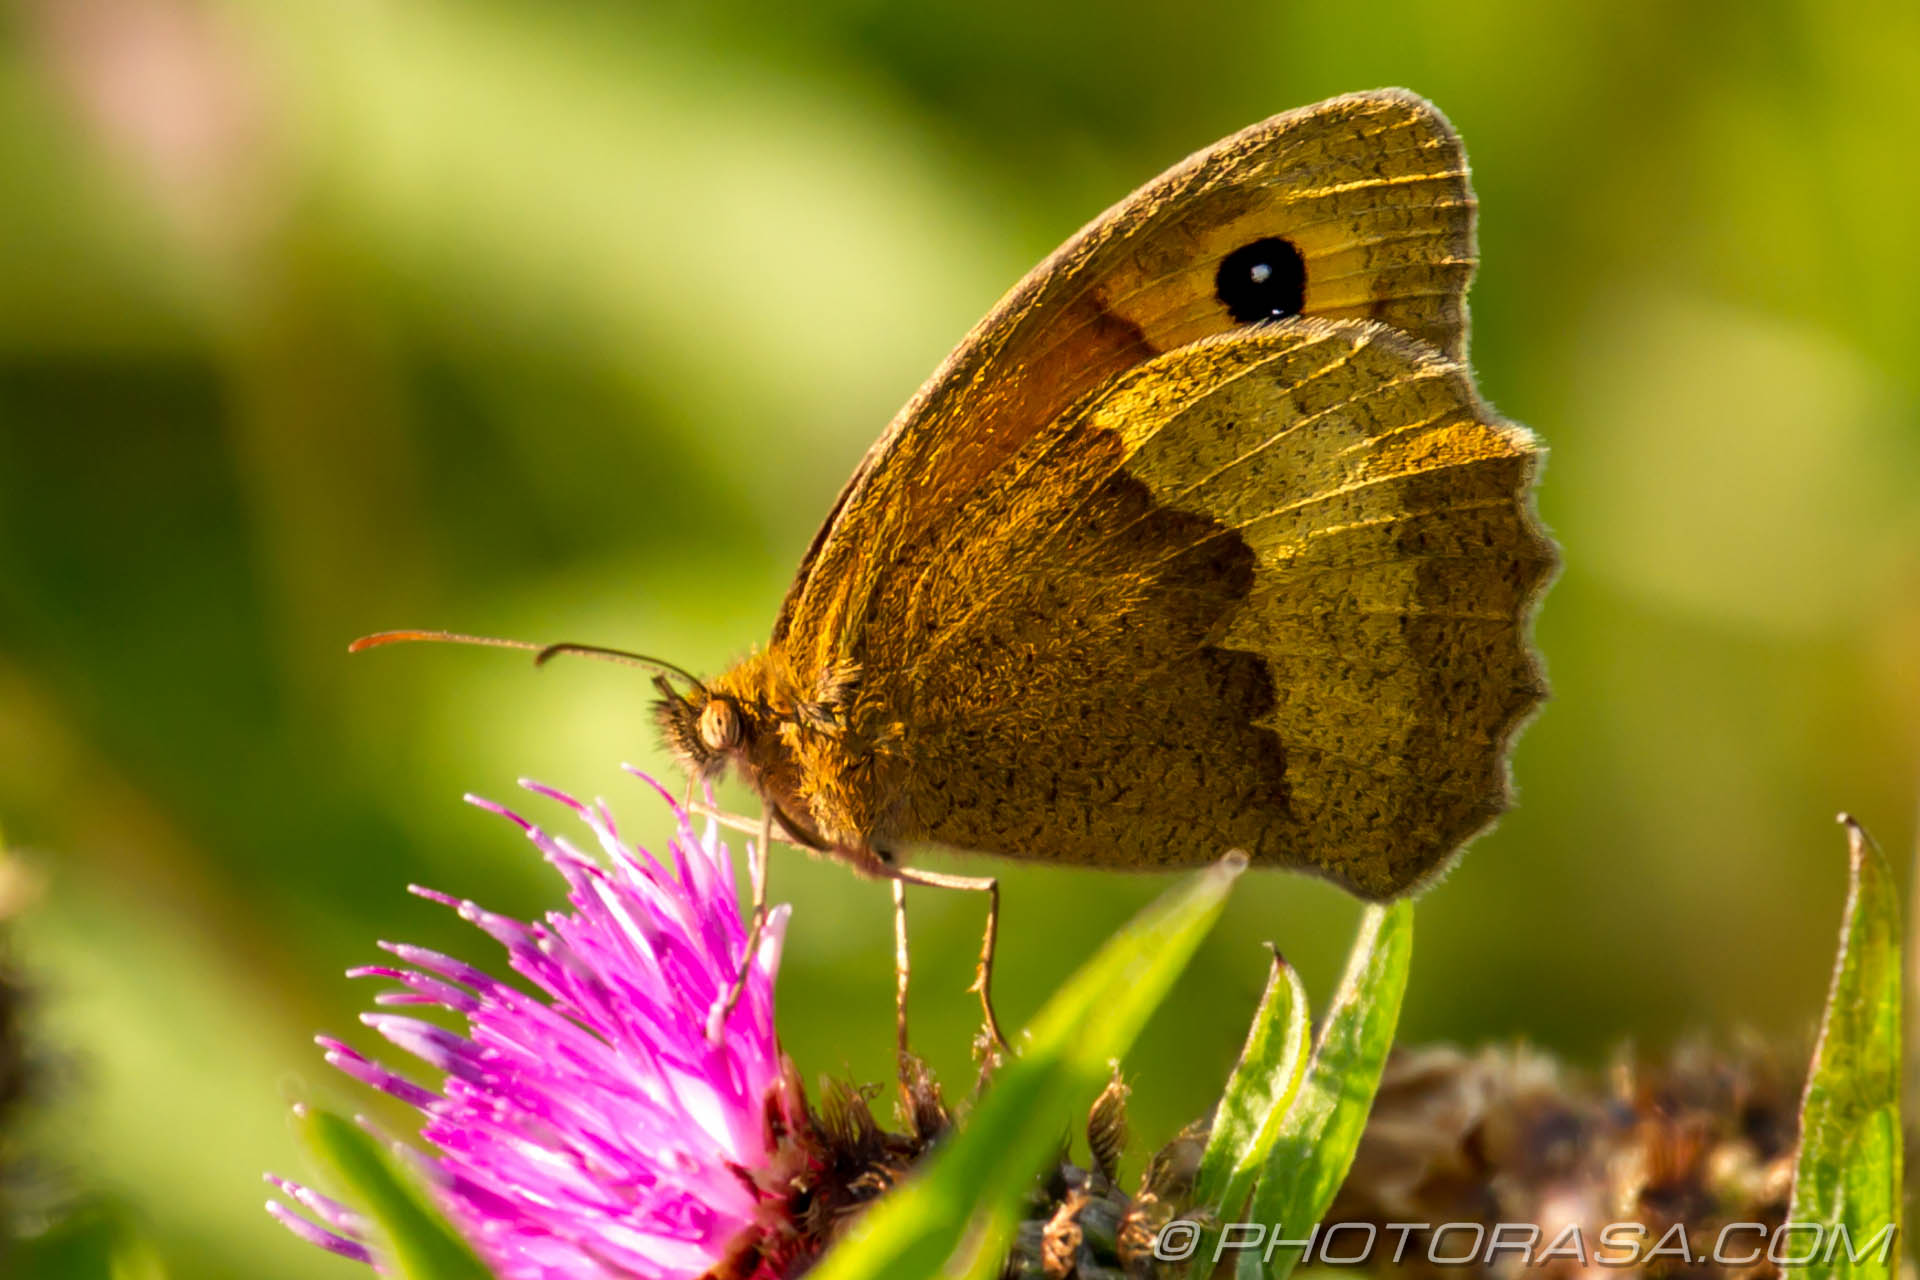 http://photorasa.com/meadow-brown-butterfly/meadow-brown-from-the-side/